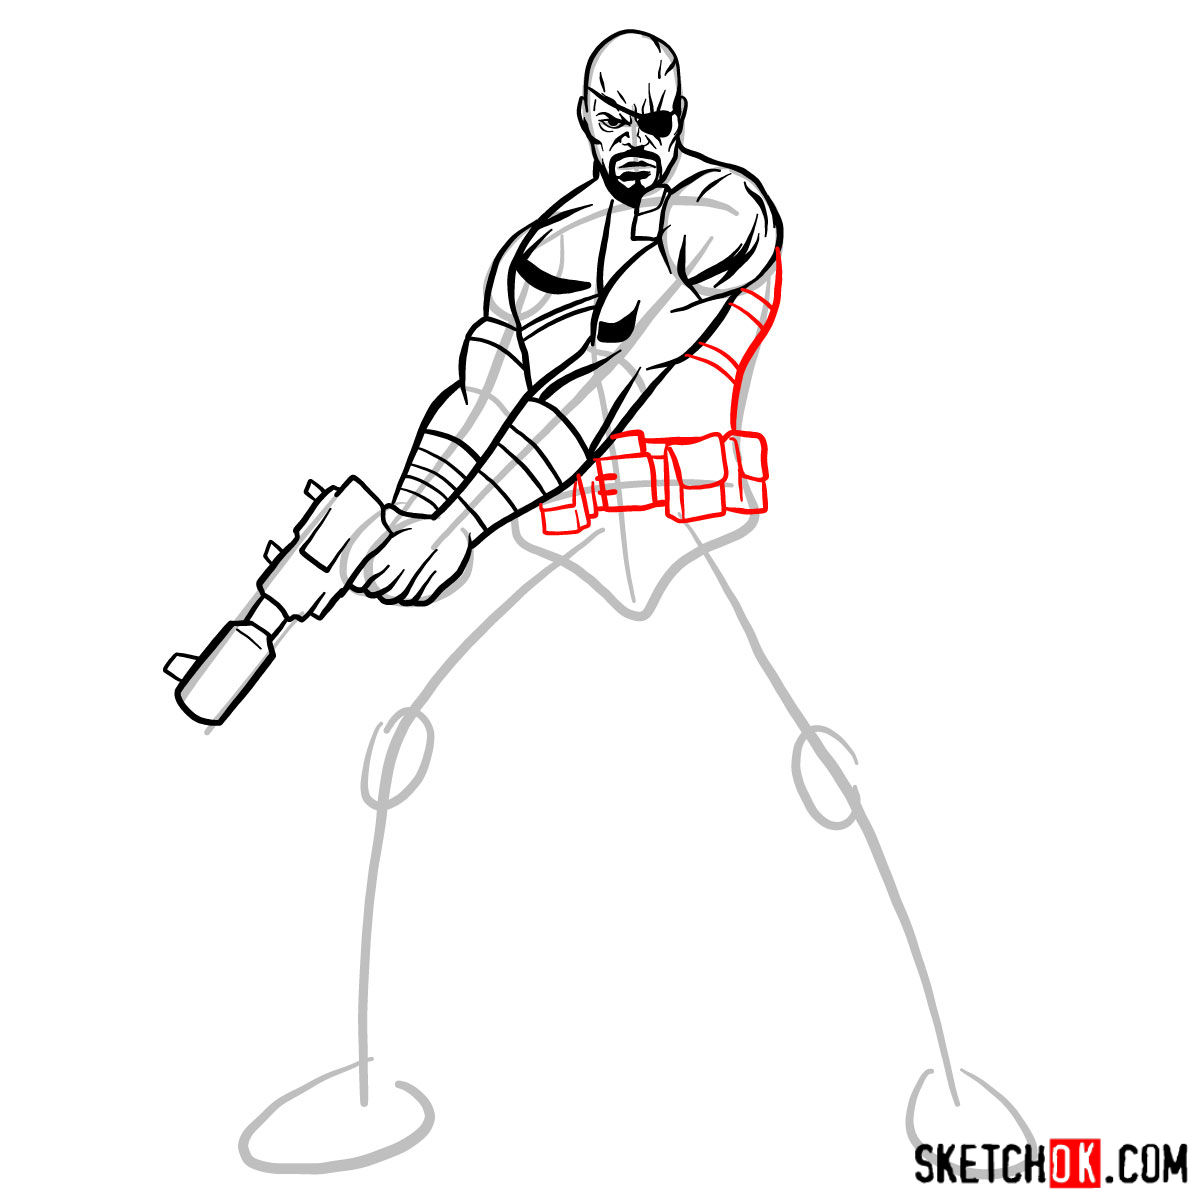 1200x1200 How To Draw Nick Fury From The Avengers